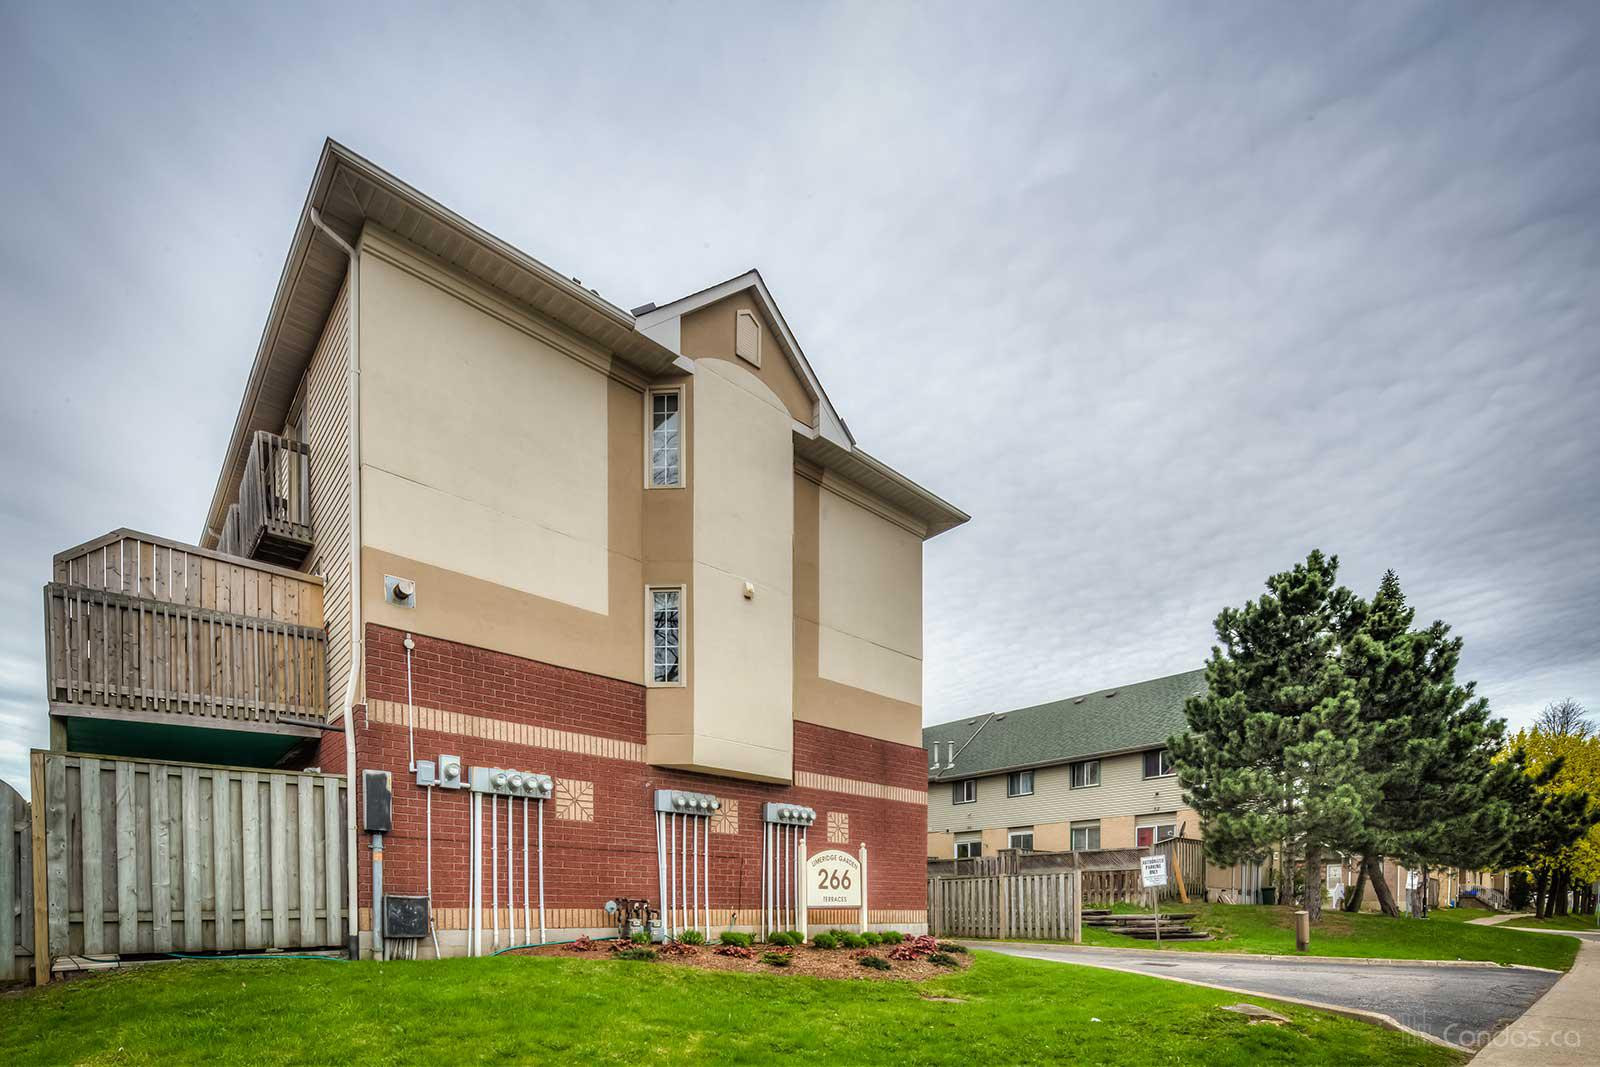 266 Limeridge Condos at 266 Limeridge Rd E, Hamilton City 1